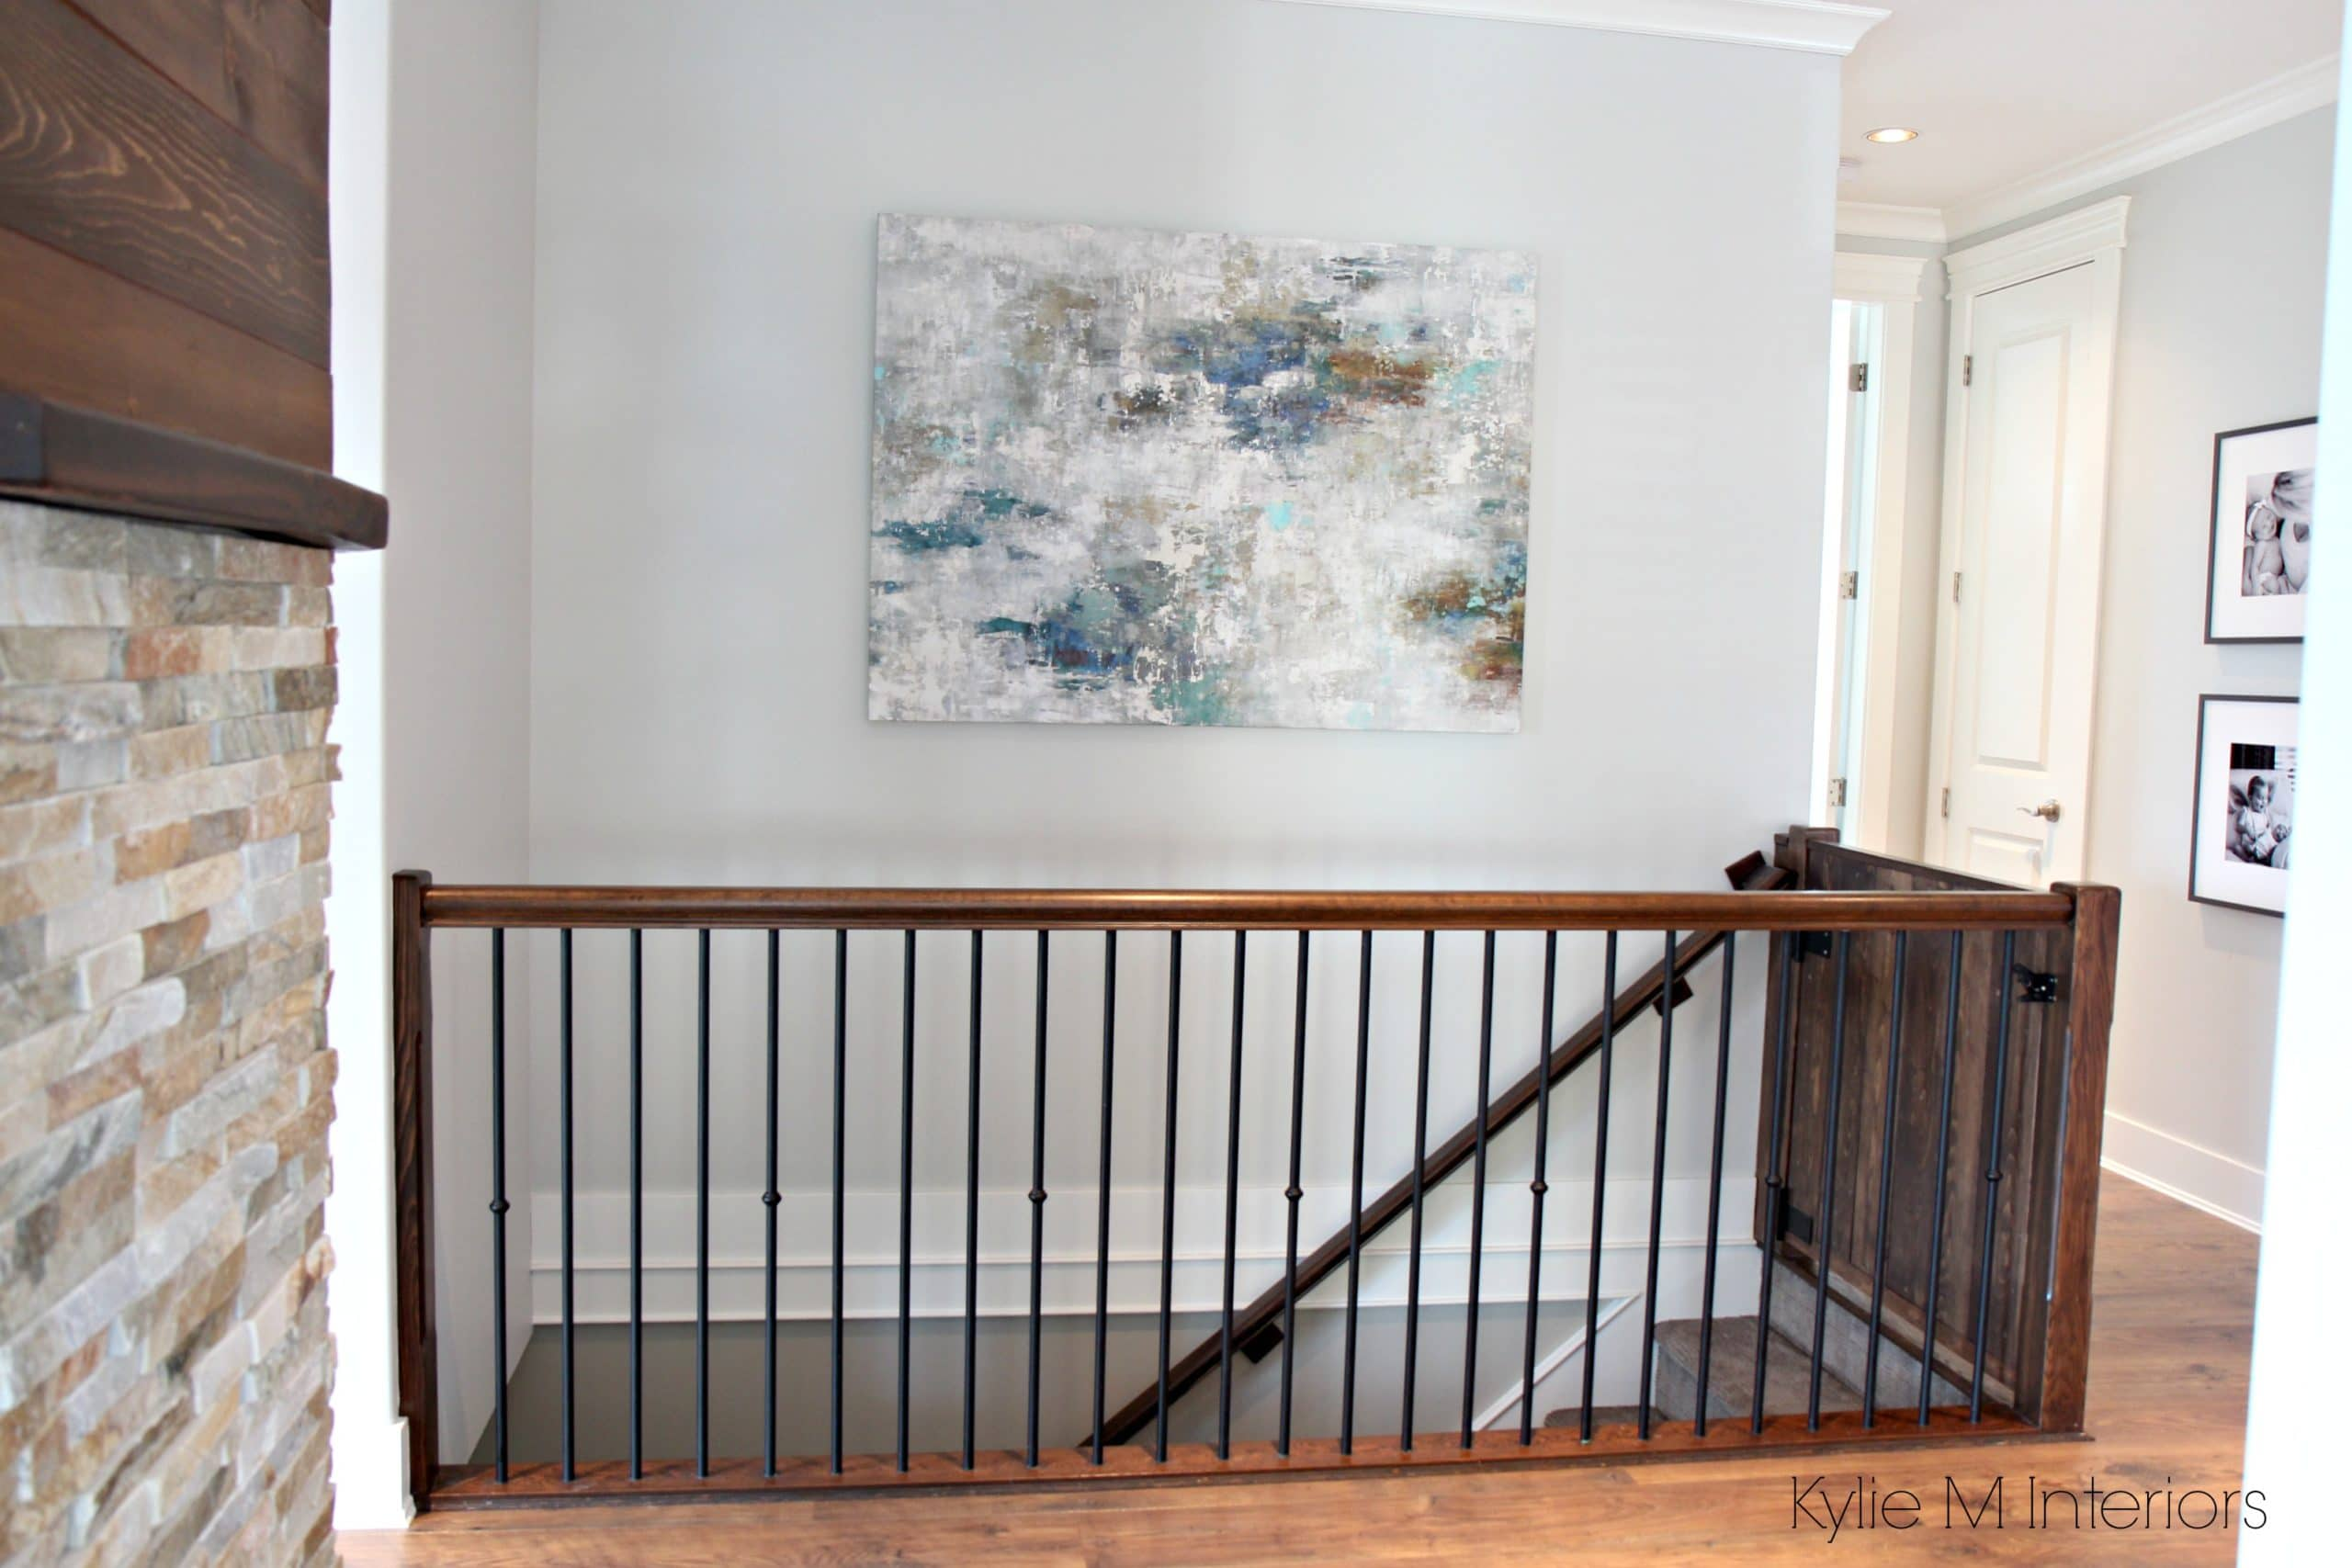 Swish Stained Stained Woodrailing Hallway Artwork On Kylie M Interiors Stairwell Stairwell Online Colorconsulting Benjamin Moore Owl Benjamin Moore Owl Hallway houzz-03 Gray Owl Benjamin Moore